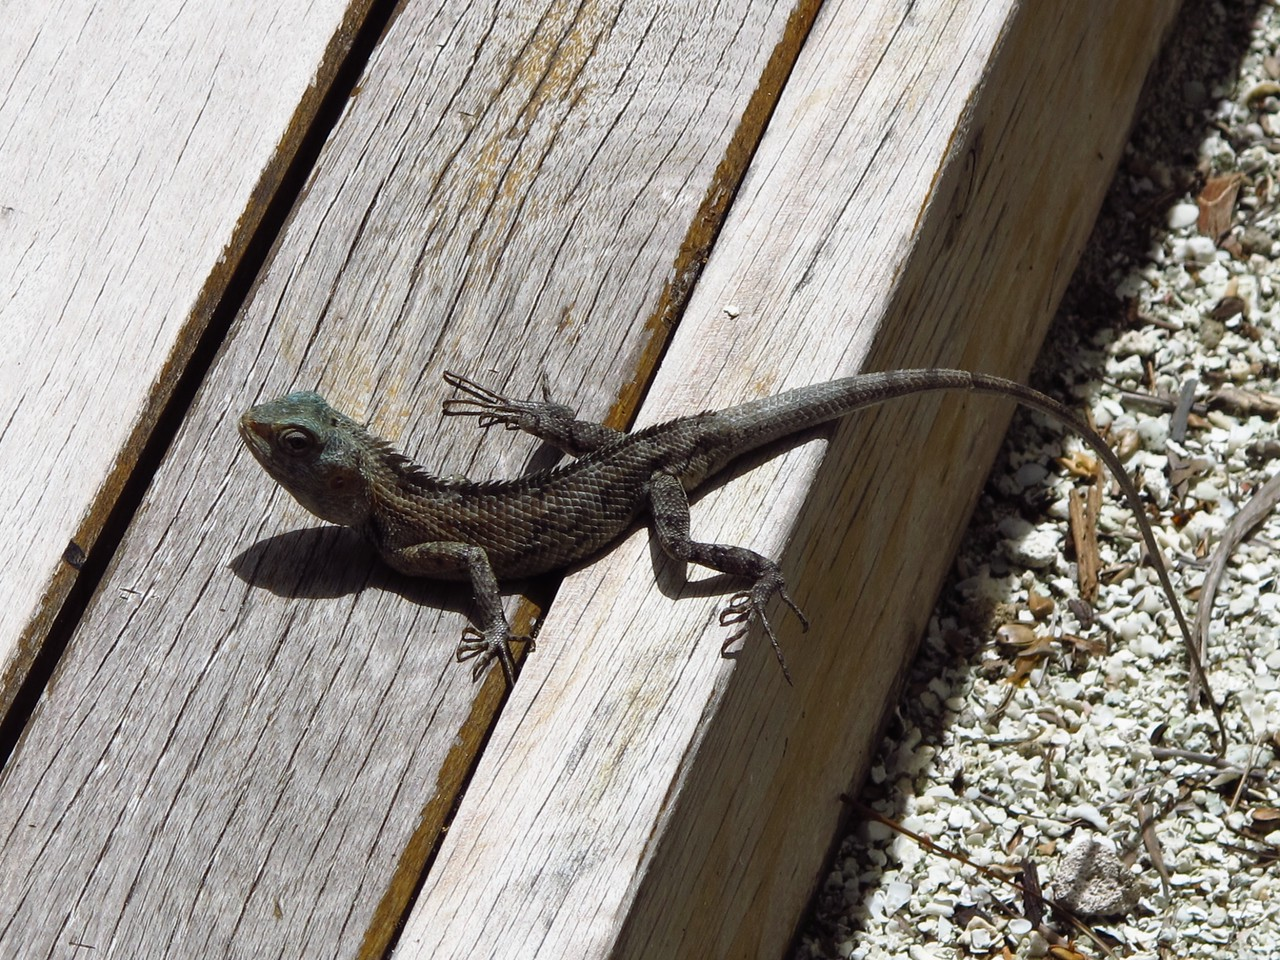 As with any tropical setting, you also get to see quite a few creatures around your villa, like this larger gecko.